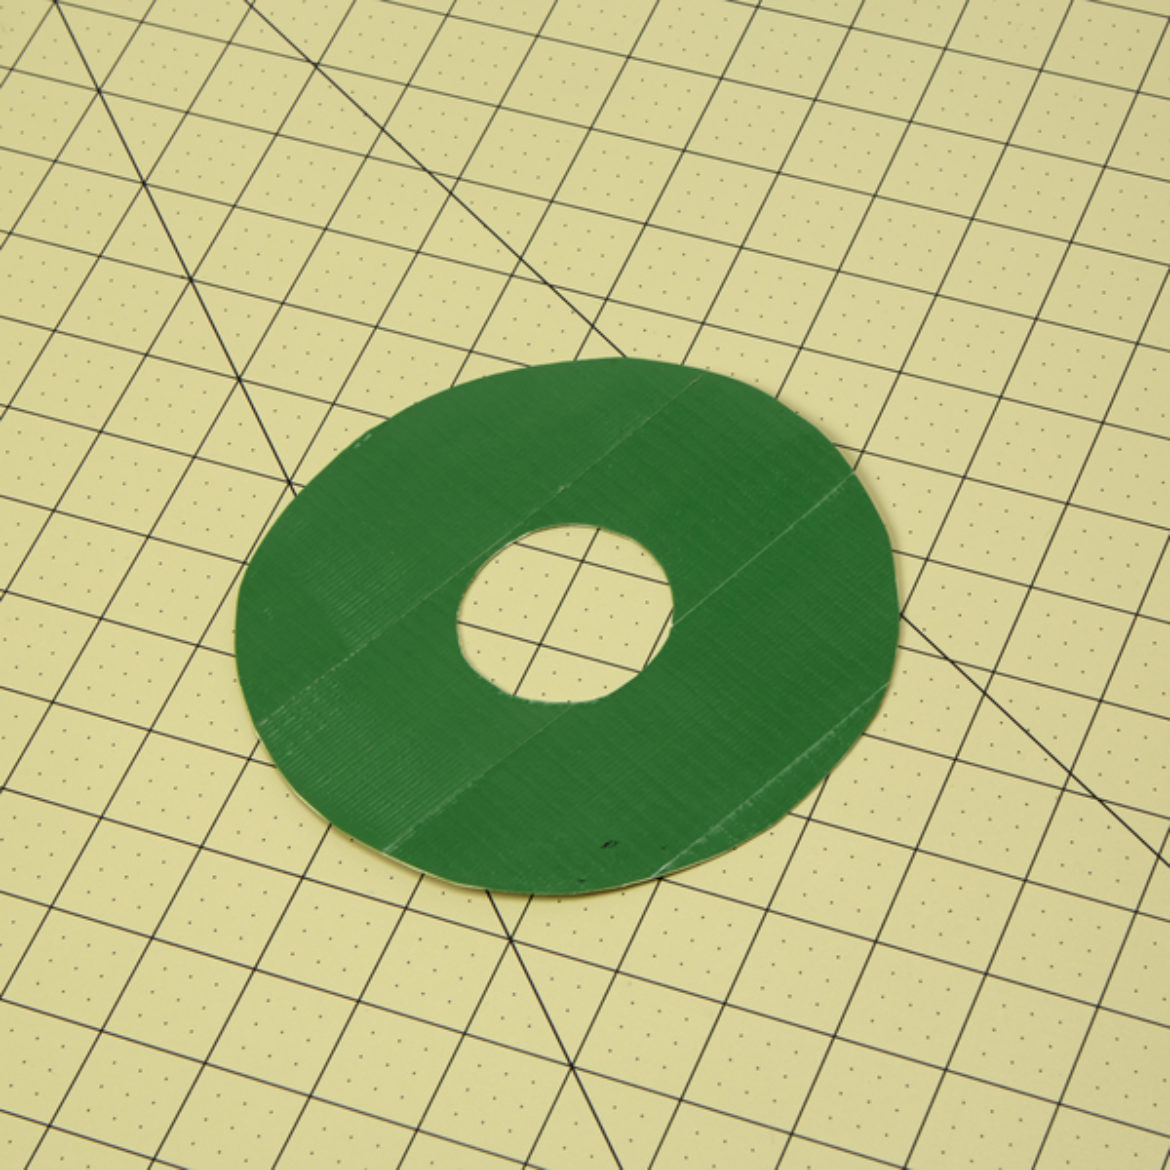 Donut shape from previous step covered in green Duck Tape